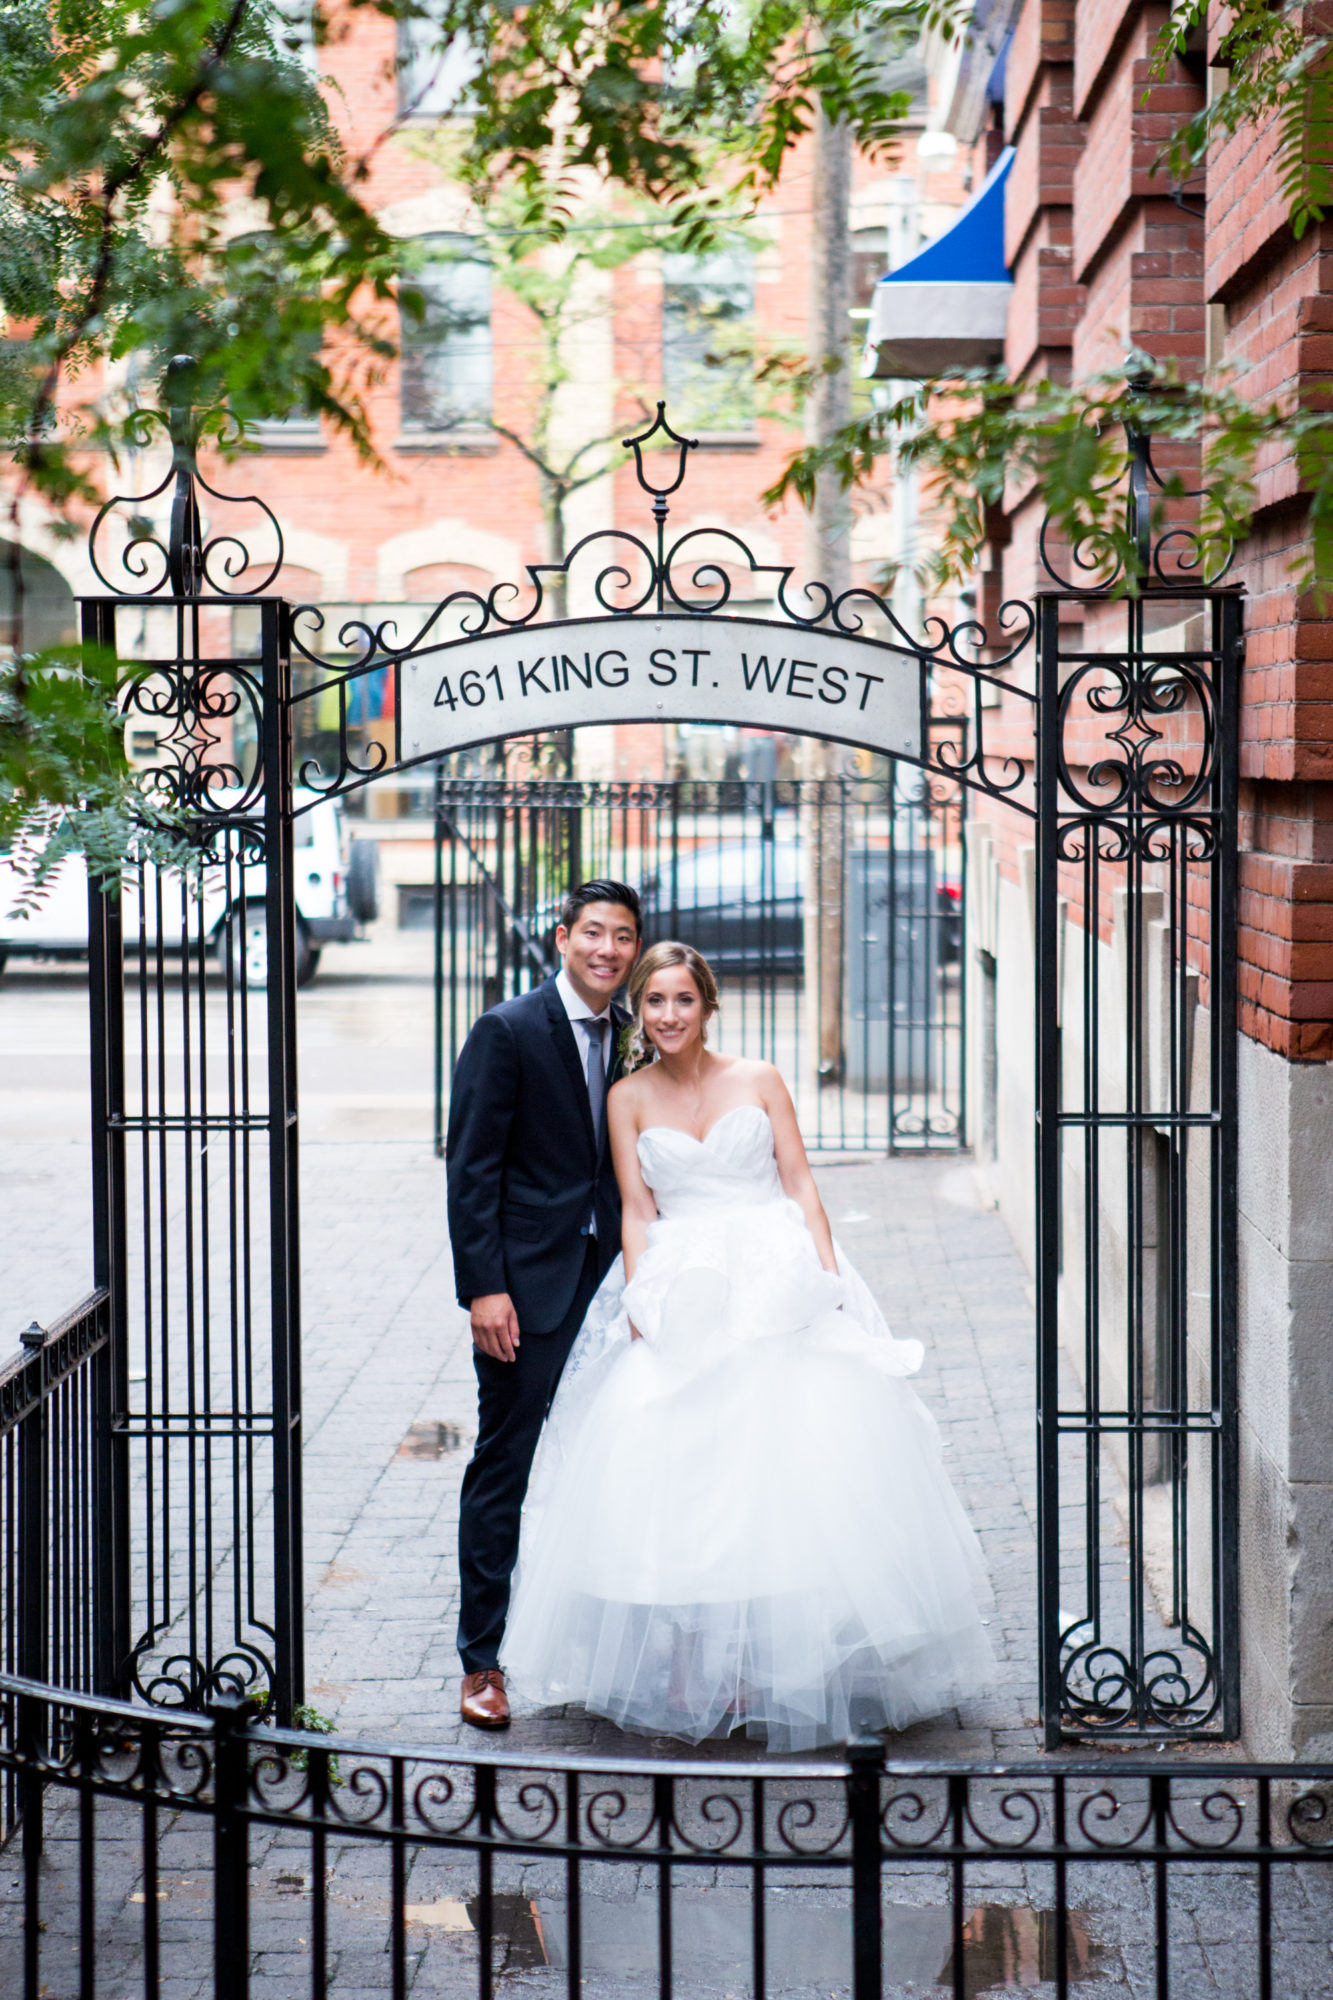 King Street Bride Groom Zsuzsi Pal Photography Toronto Wedding 2nd Second Floor Events